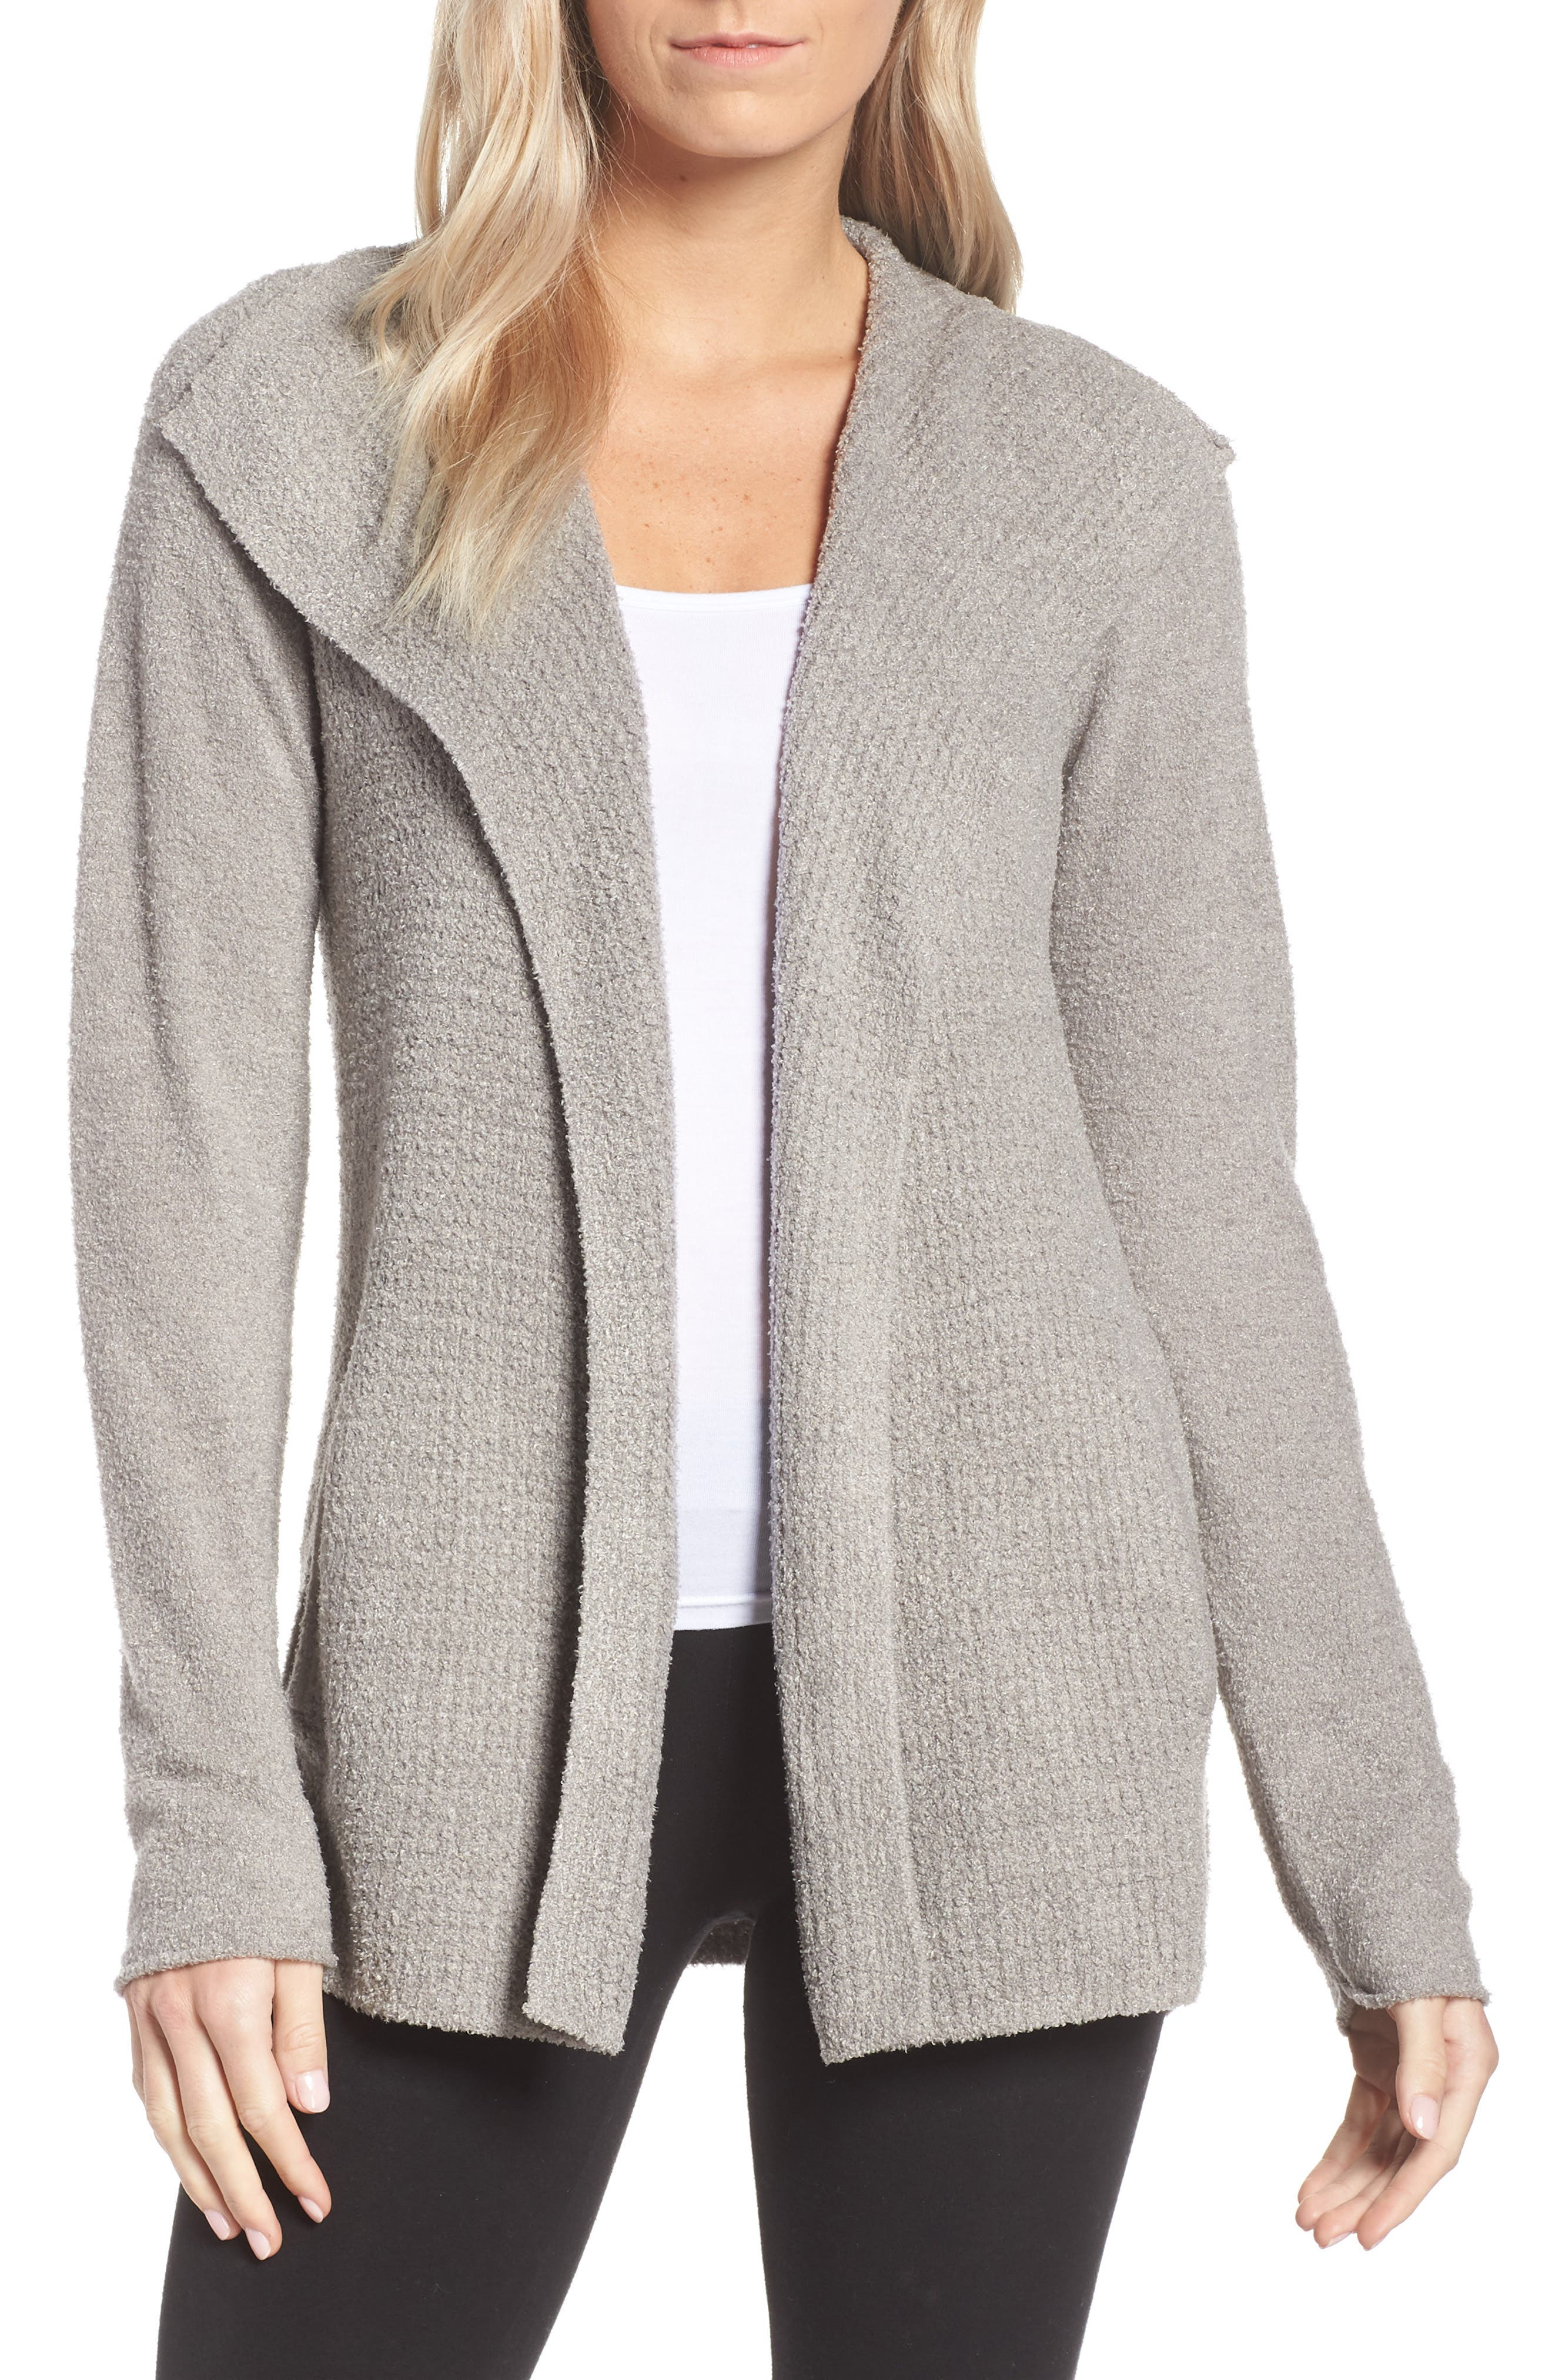 Cozychic<sup>®</sup> Lite Coastal Cardigan,                             Main thumbnail 1, color,                             PEWTER